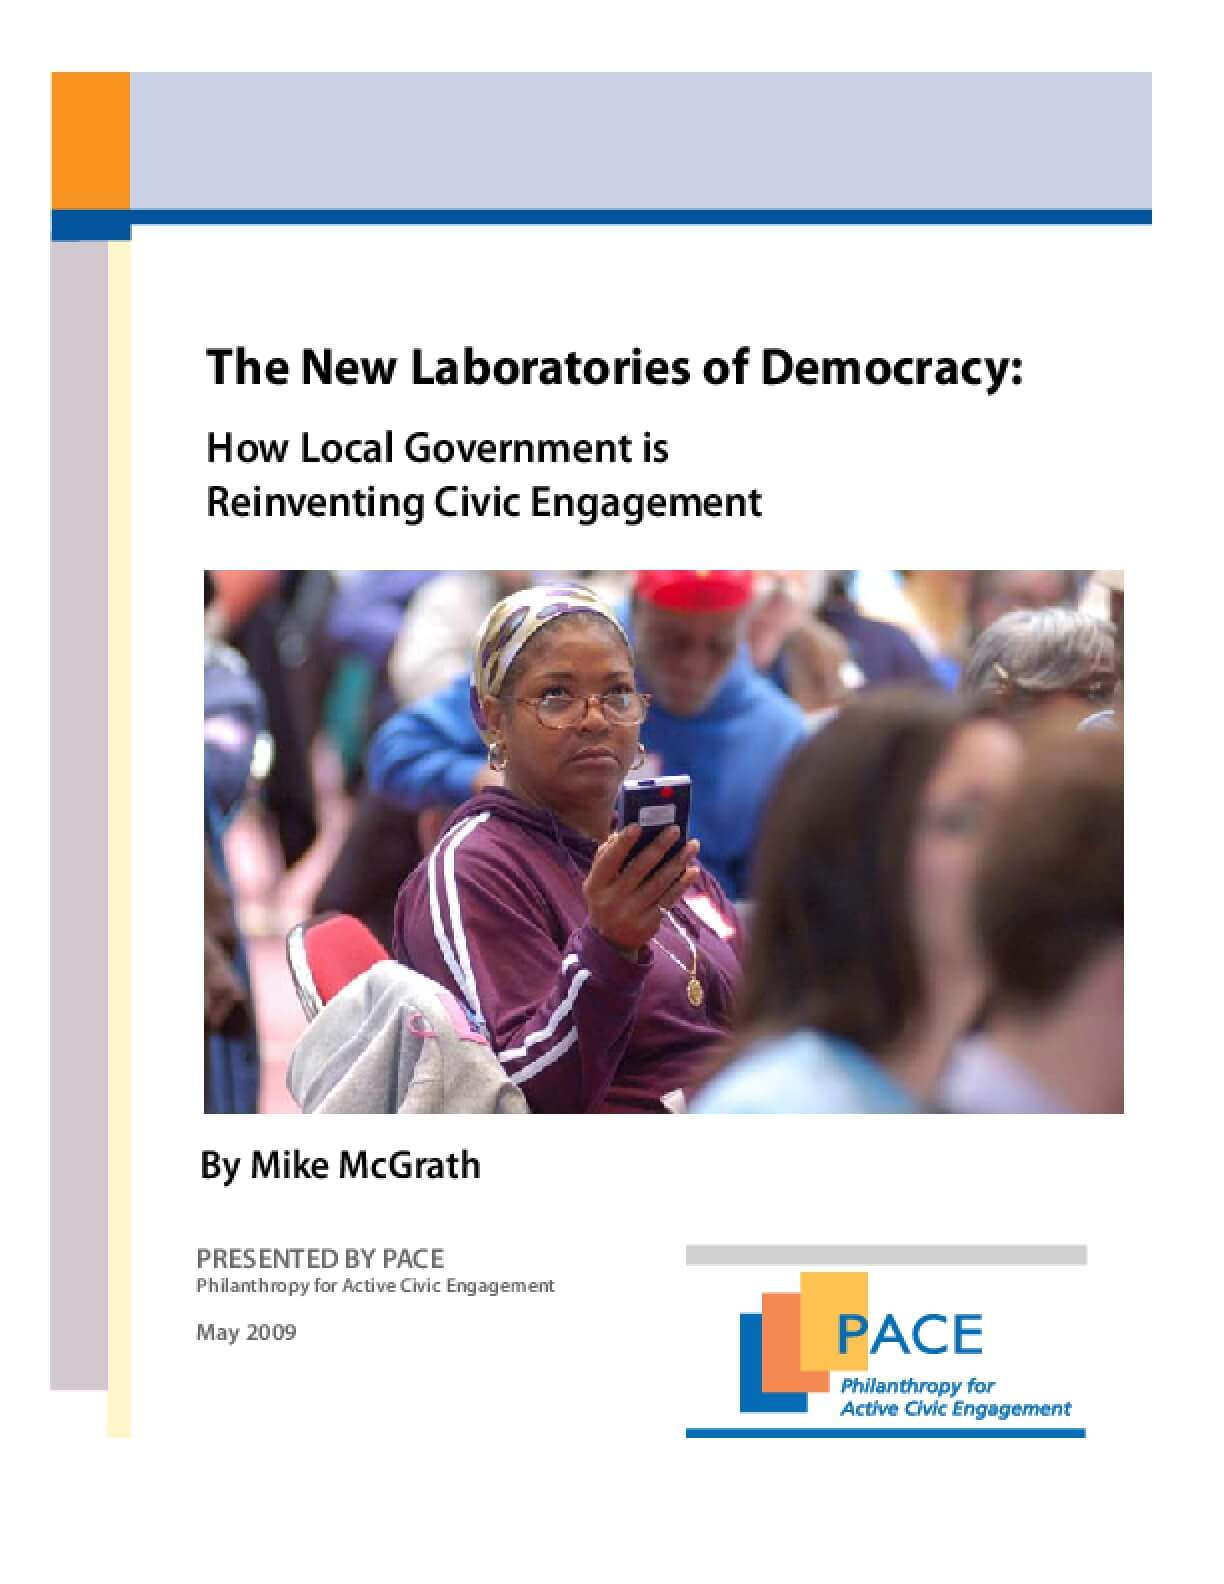 The New Laboratories of Democracy: How Local Government Is Reinventing Civic Engagement